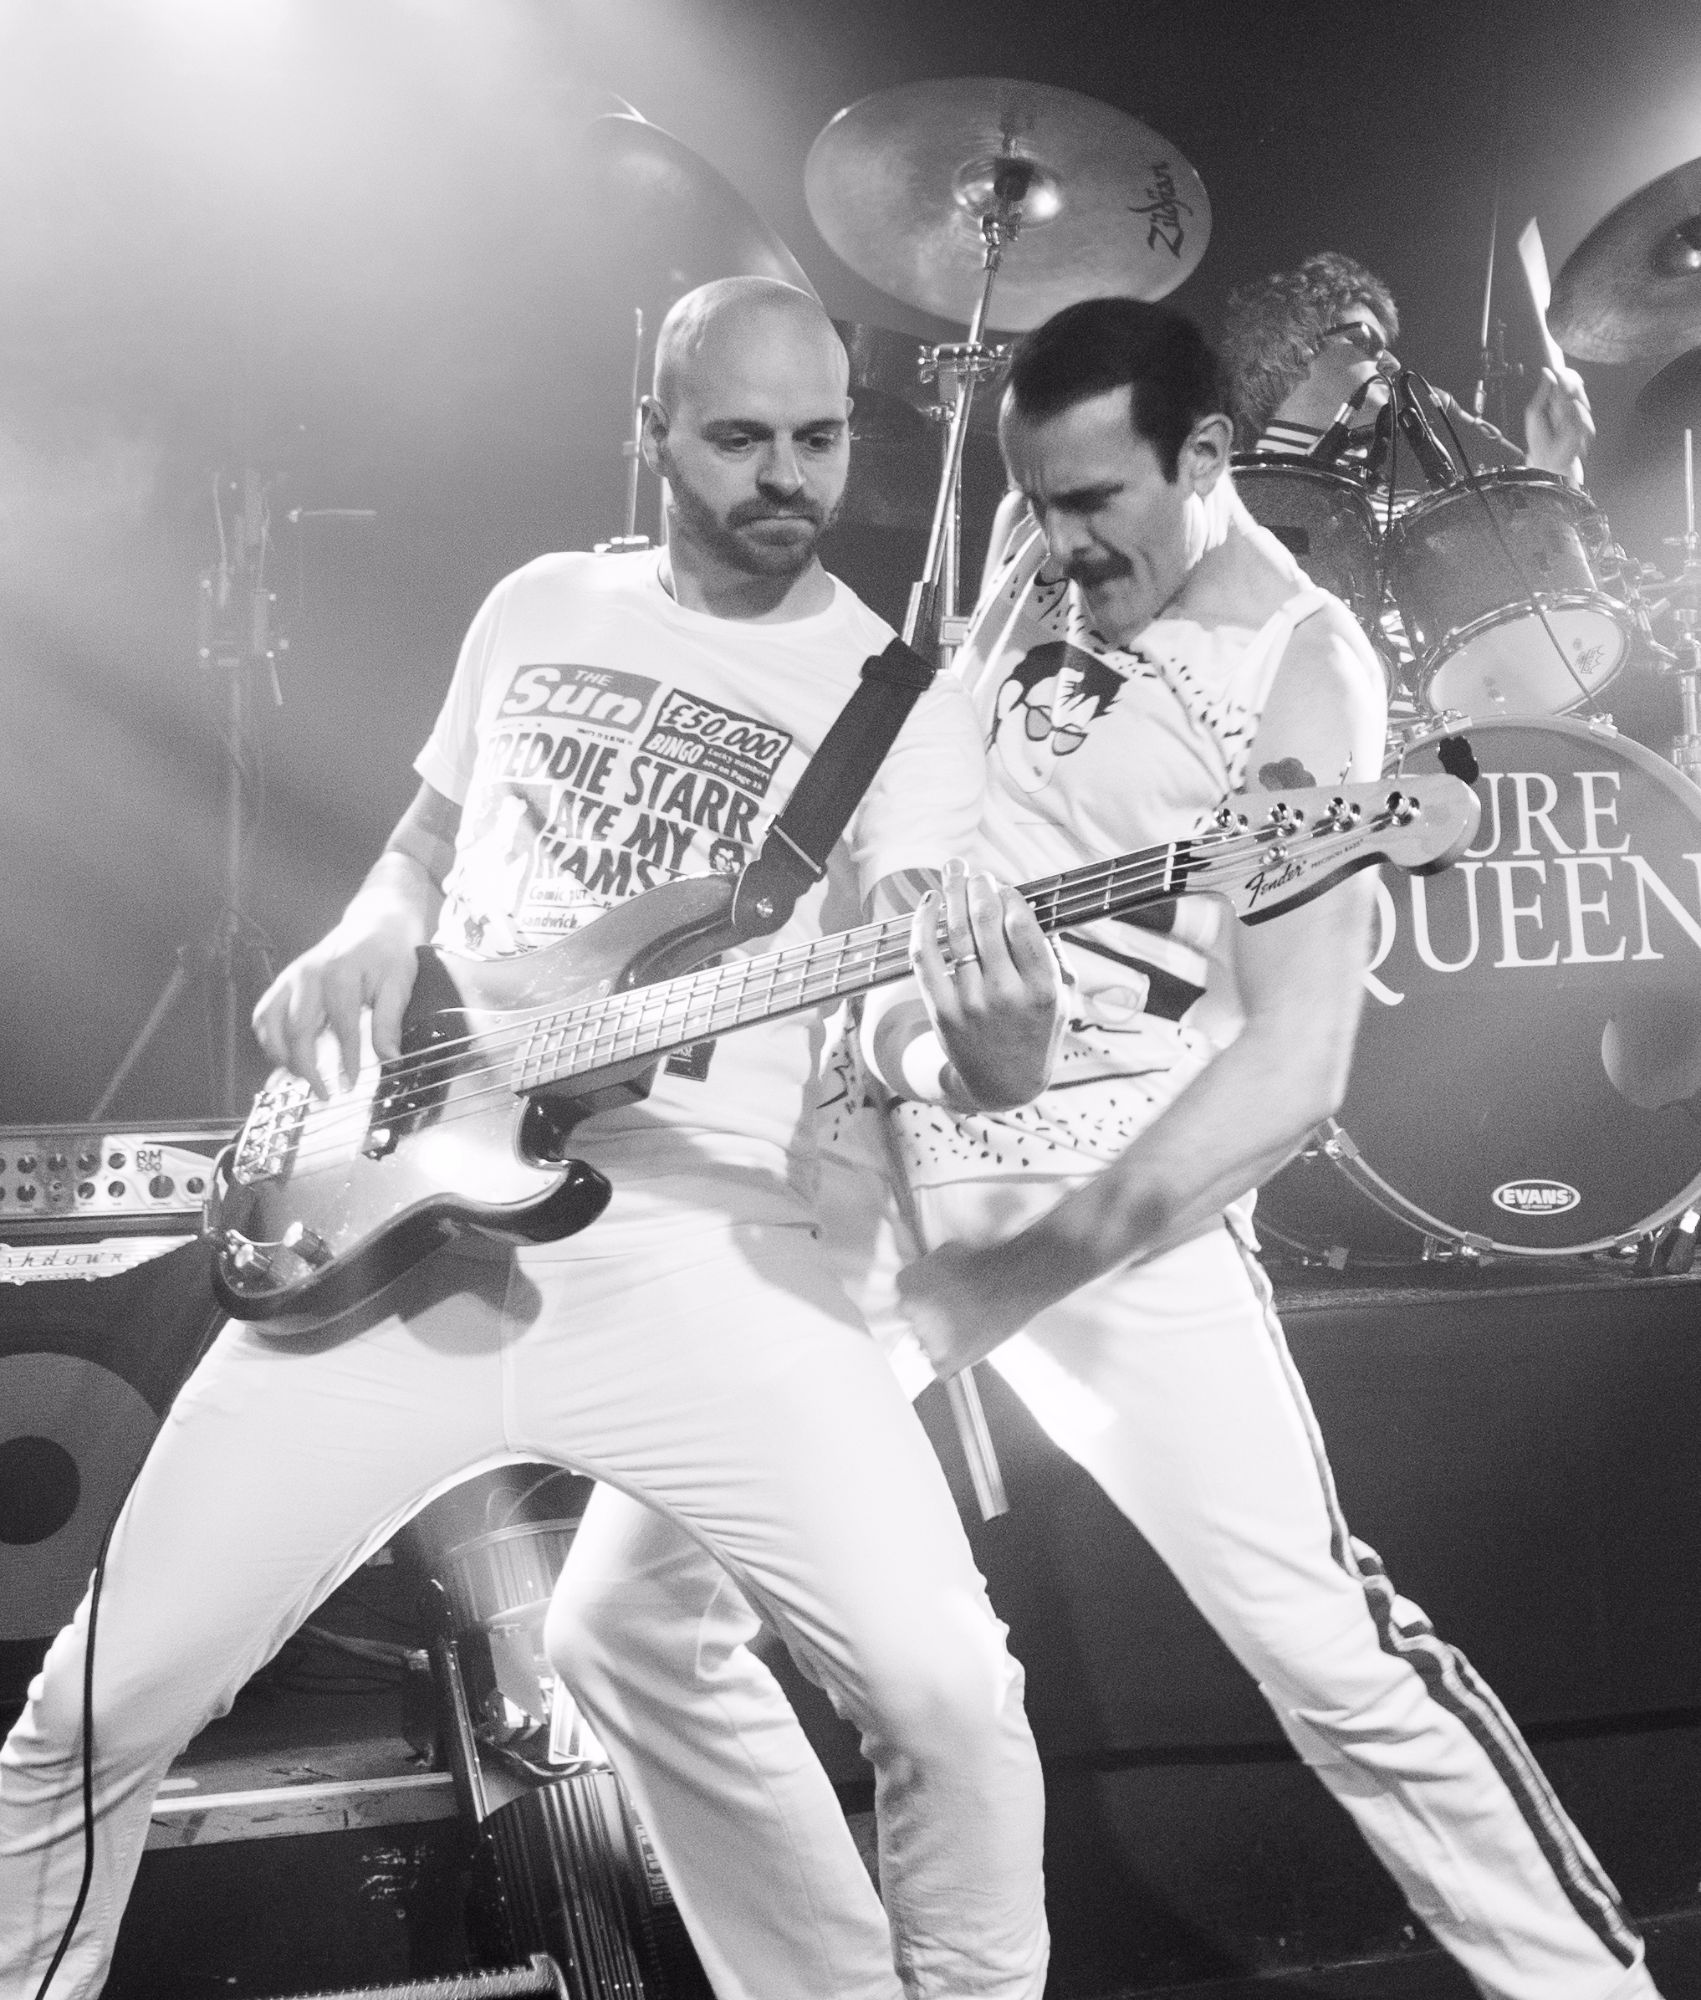 Freddie Mercury & John Deacon Pure Queen Tribute Band